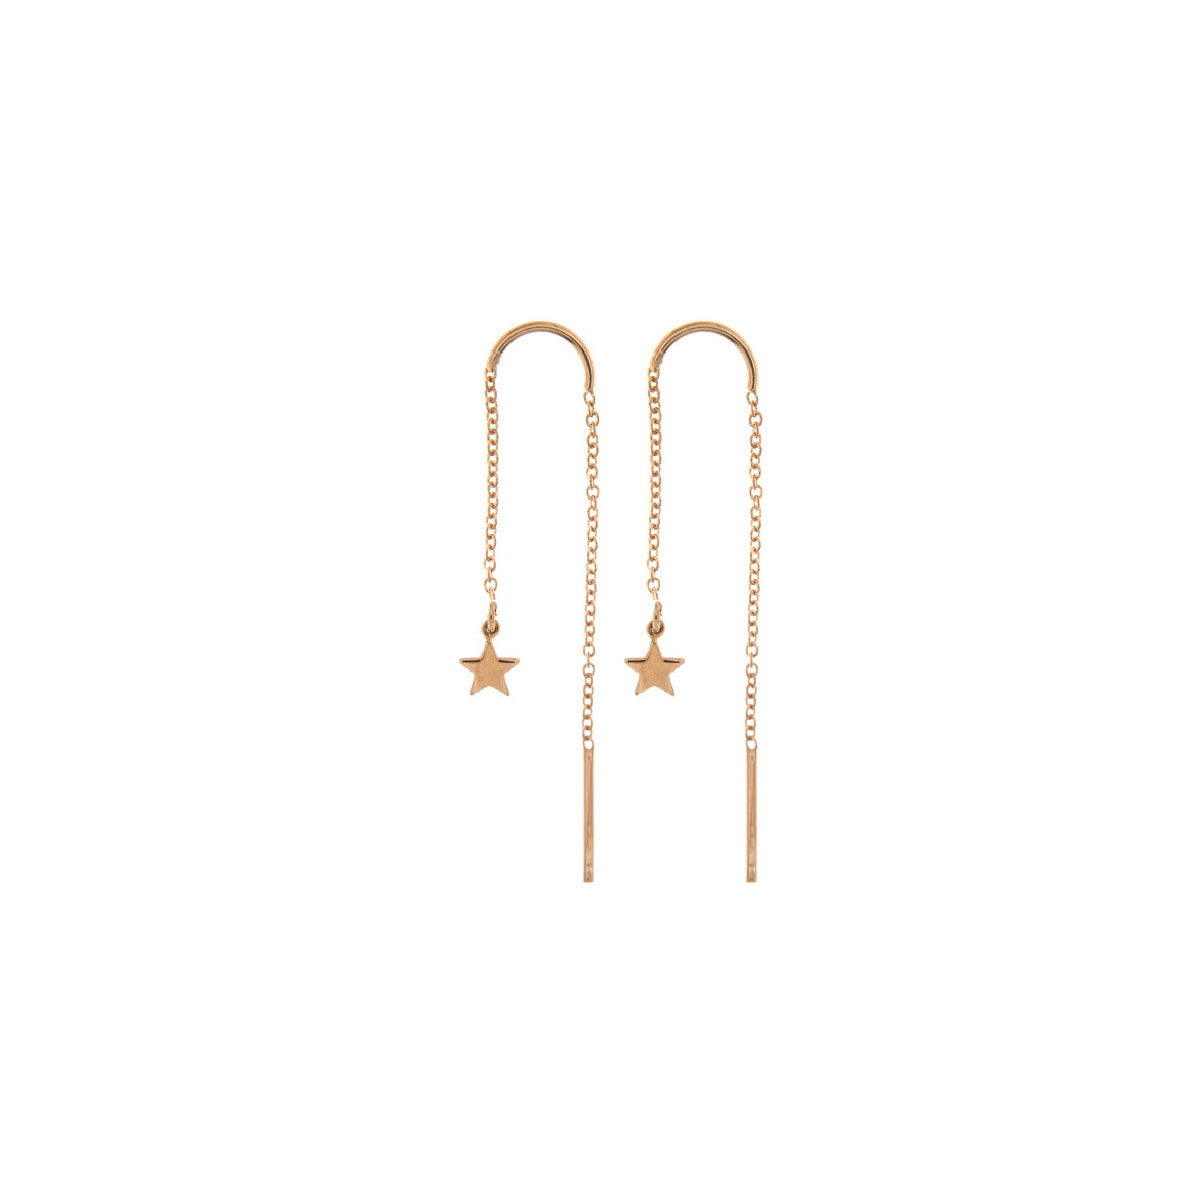 Earrings - Earring chain rounded subject - star - 1 | Rue des Mille